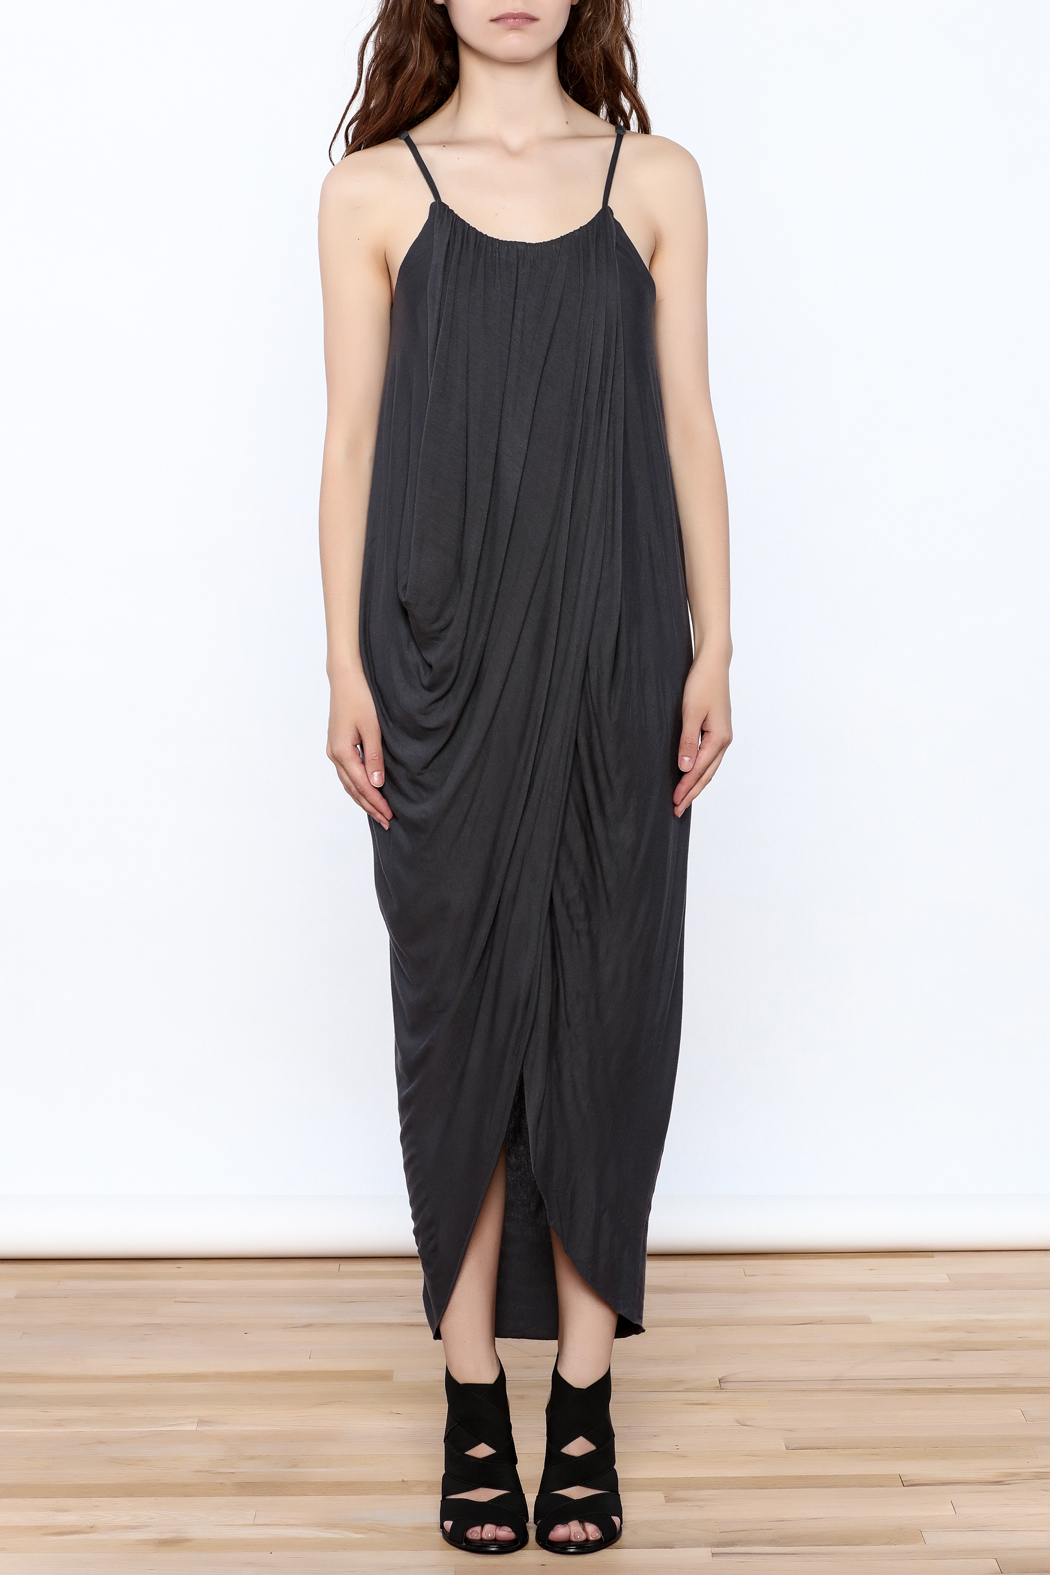 HYFVE Charcoal Drapey Sleeveless Dress - Front Cropped Image